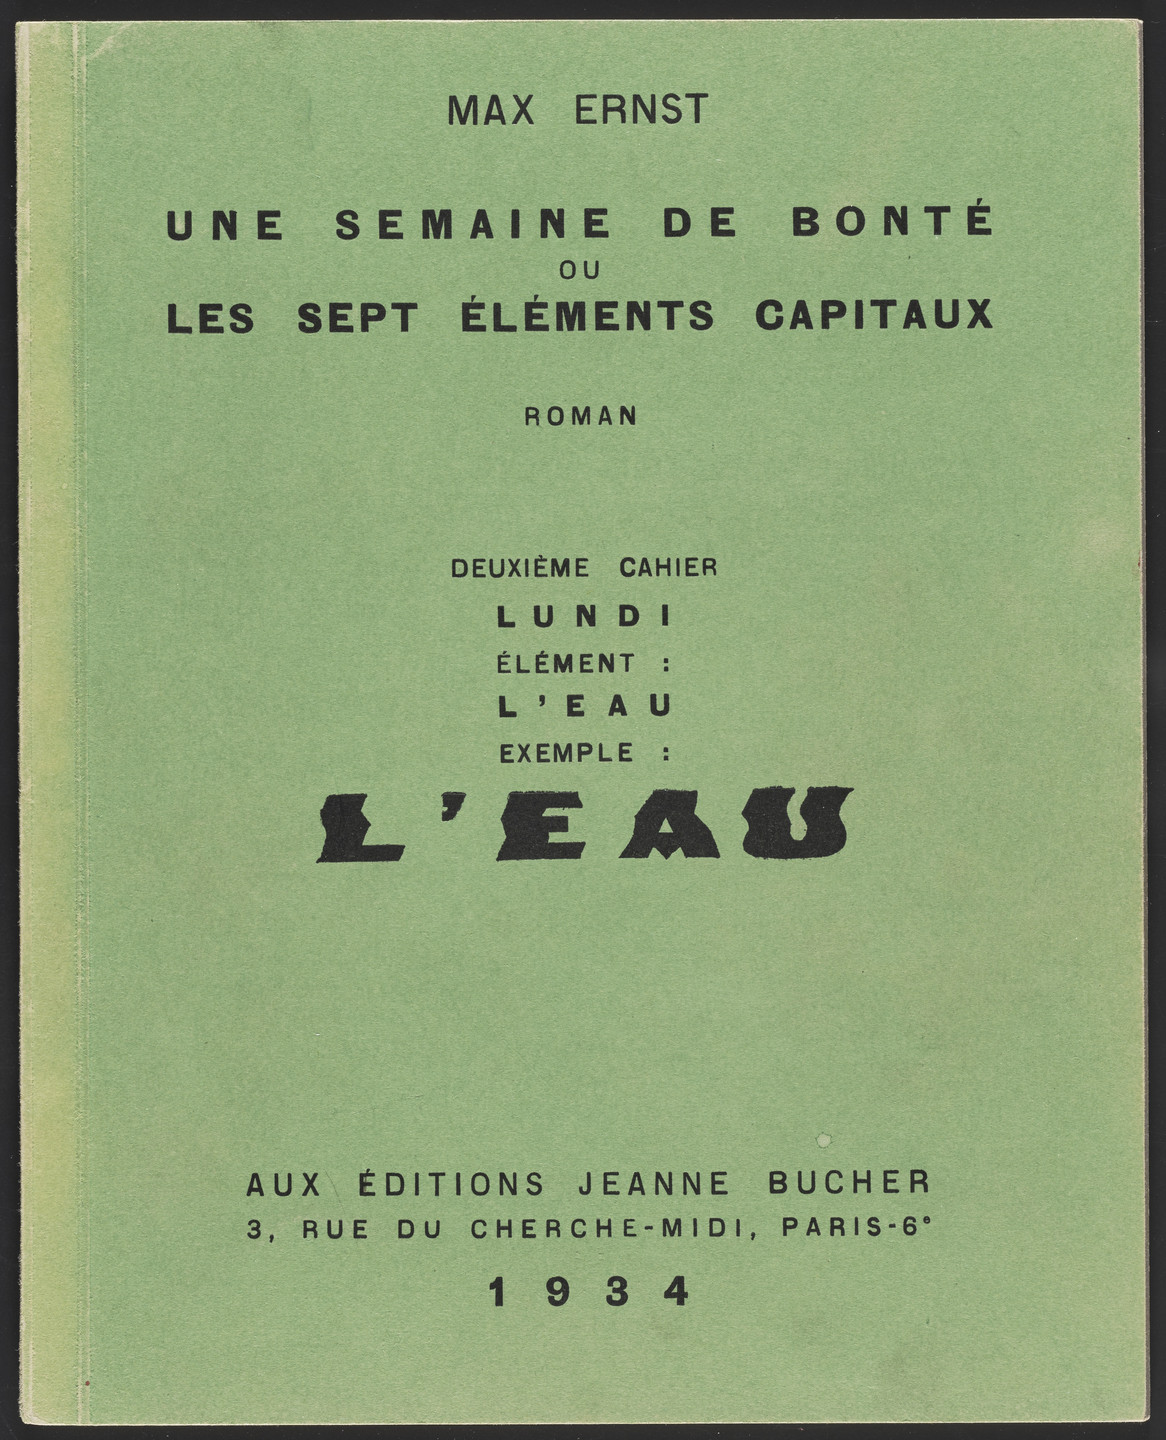 Max Ernst. Volume II: L'Eau (Volume II: Water) from Une Semaine de bonté ou les sept éléments capitaux (A Week of Kindness or the Seven Deadly Elements). 1933–34, published 1934